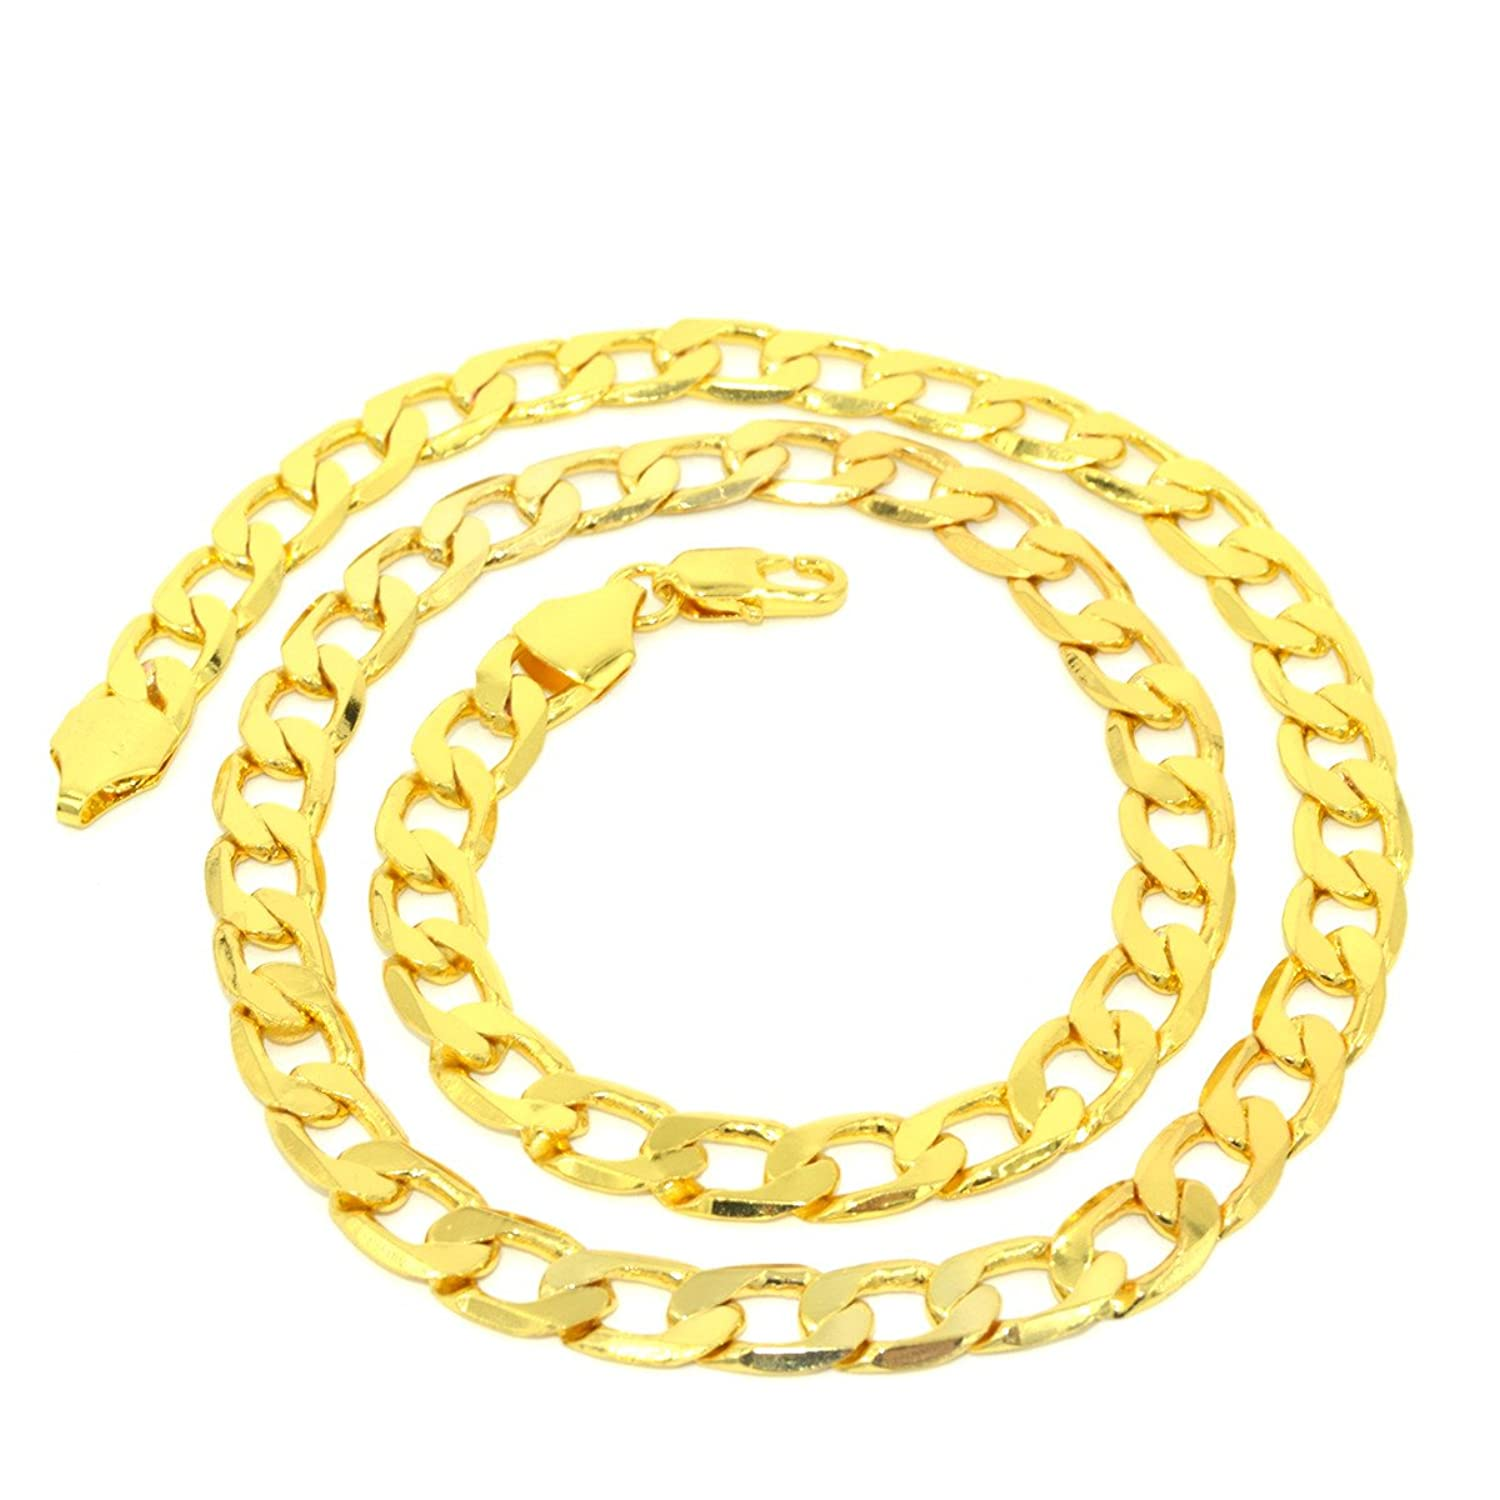 free jewelry chains gold flat women chain plated real shipping christmas snake ornaments africa necklace men in from necklaces item long